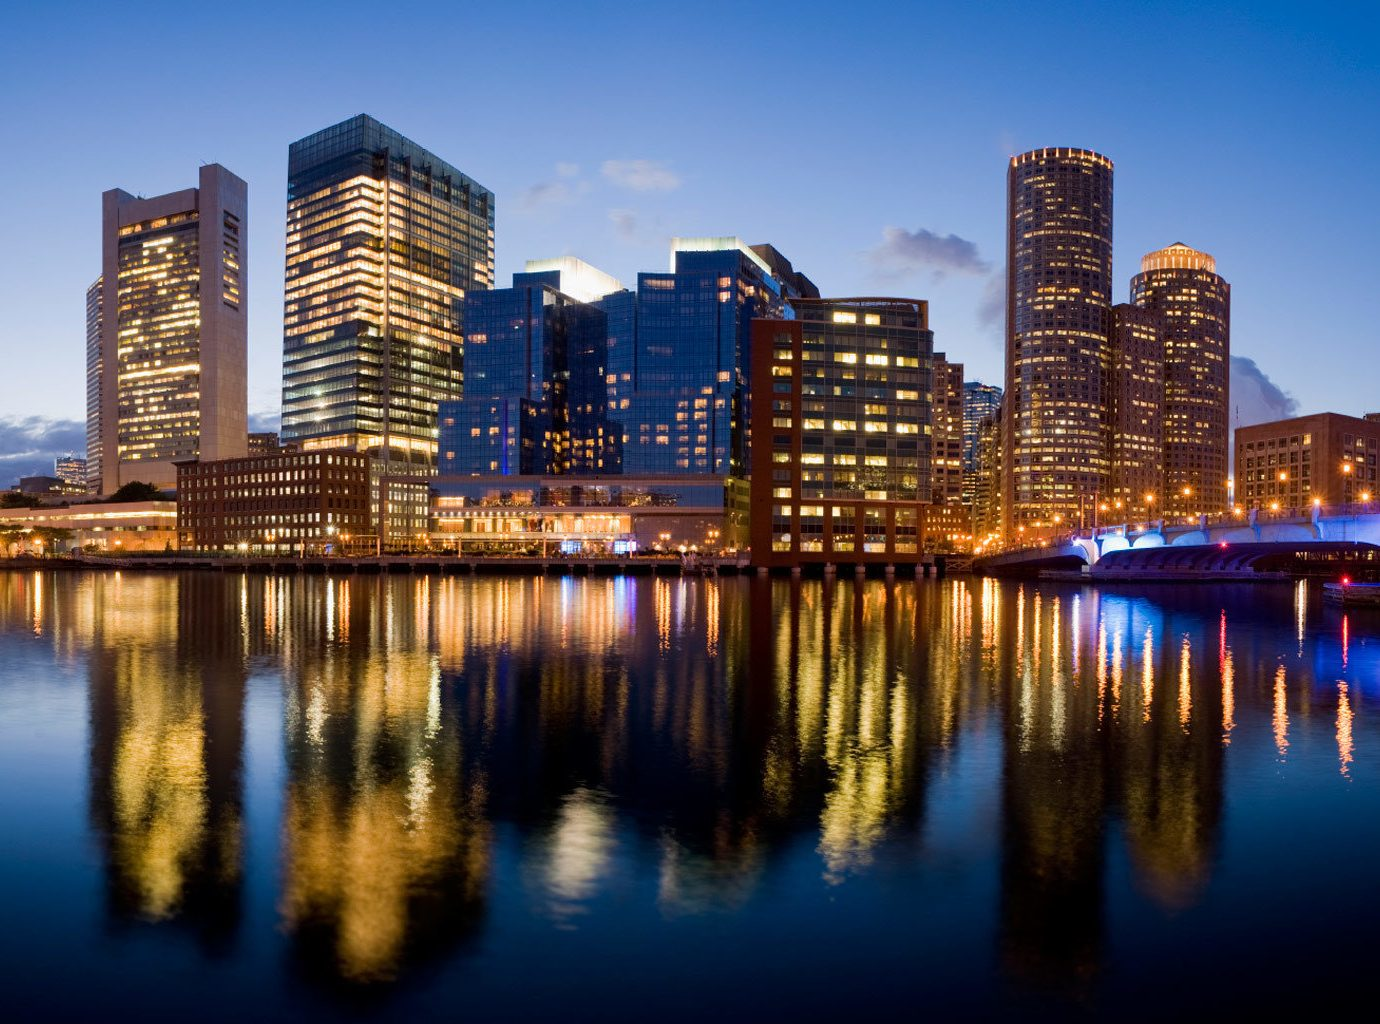 Architecture Buildings City Dining Hotels Shop Waterfront water sky outdoor River reflection skyline geographical feature landmark metropolitan area cityscape horizon night human settlement skyscraper metropolis urban area dusk evening Downtown Lake panorama distance